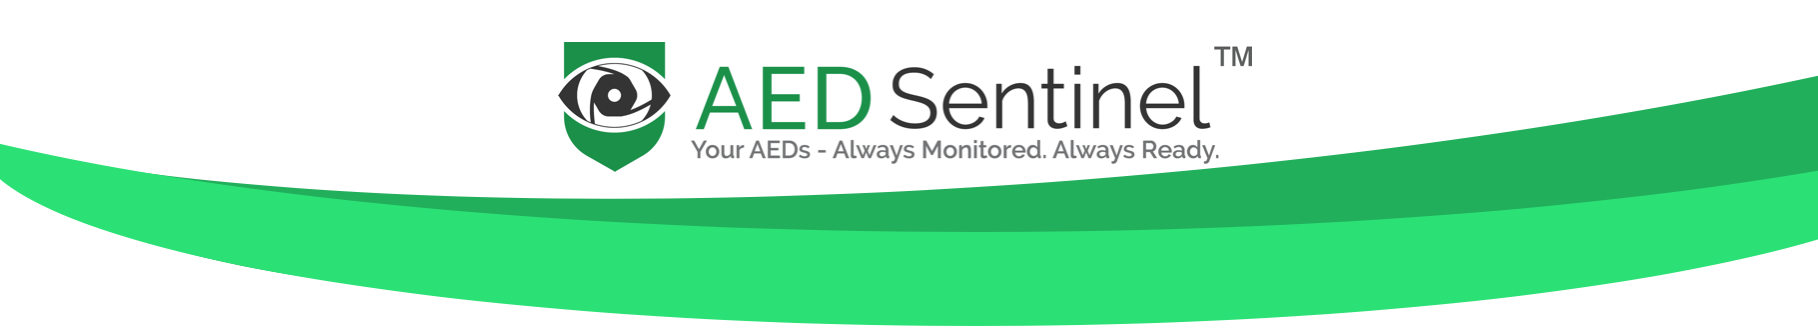 aed-sentinel-banner.png